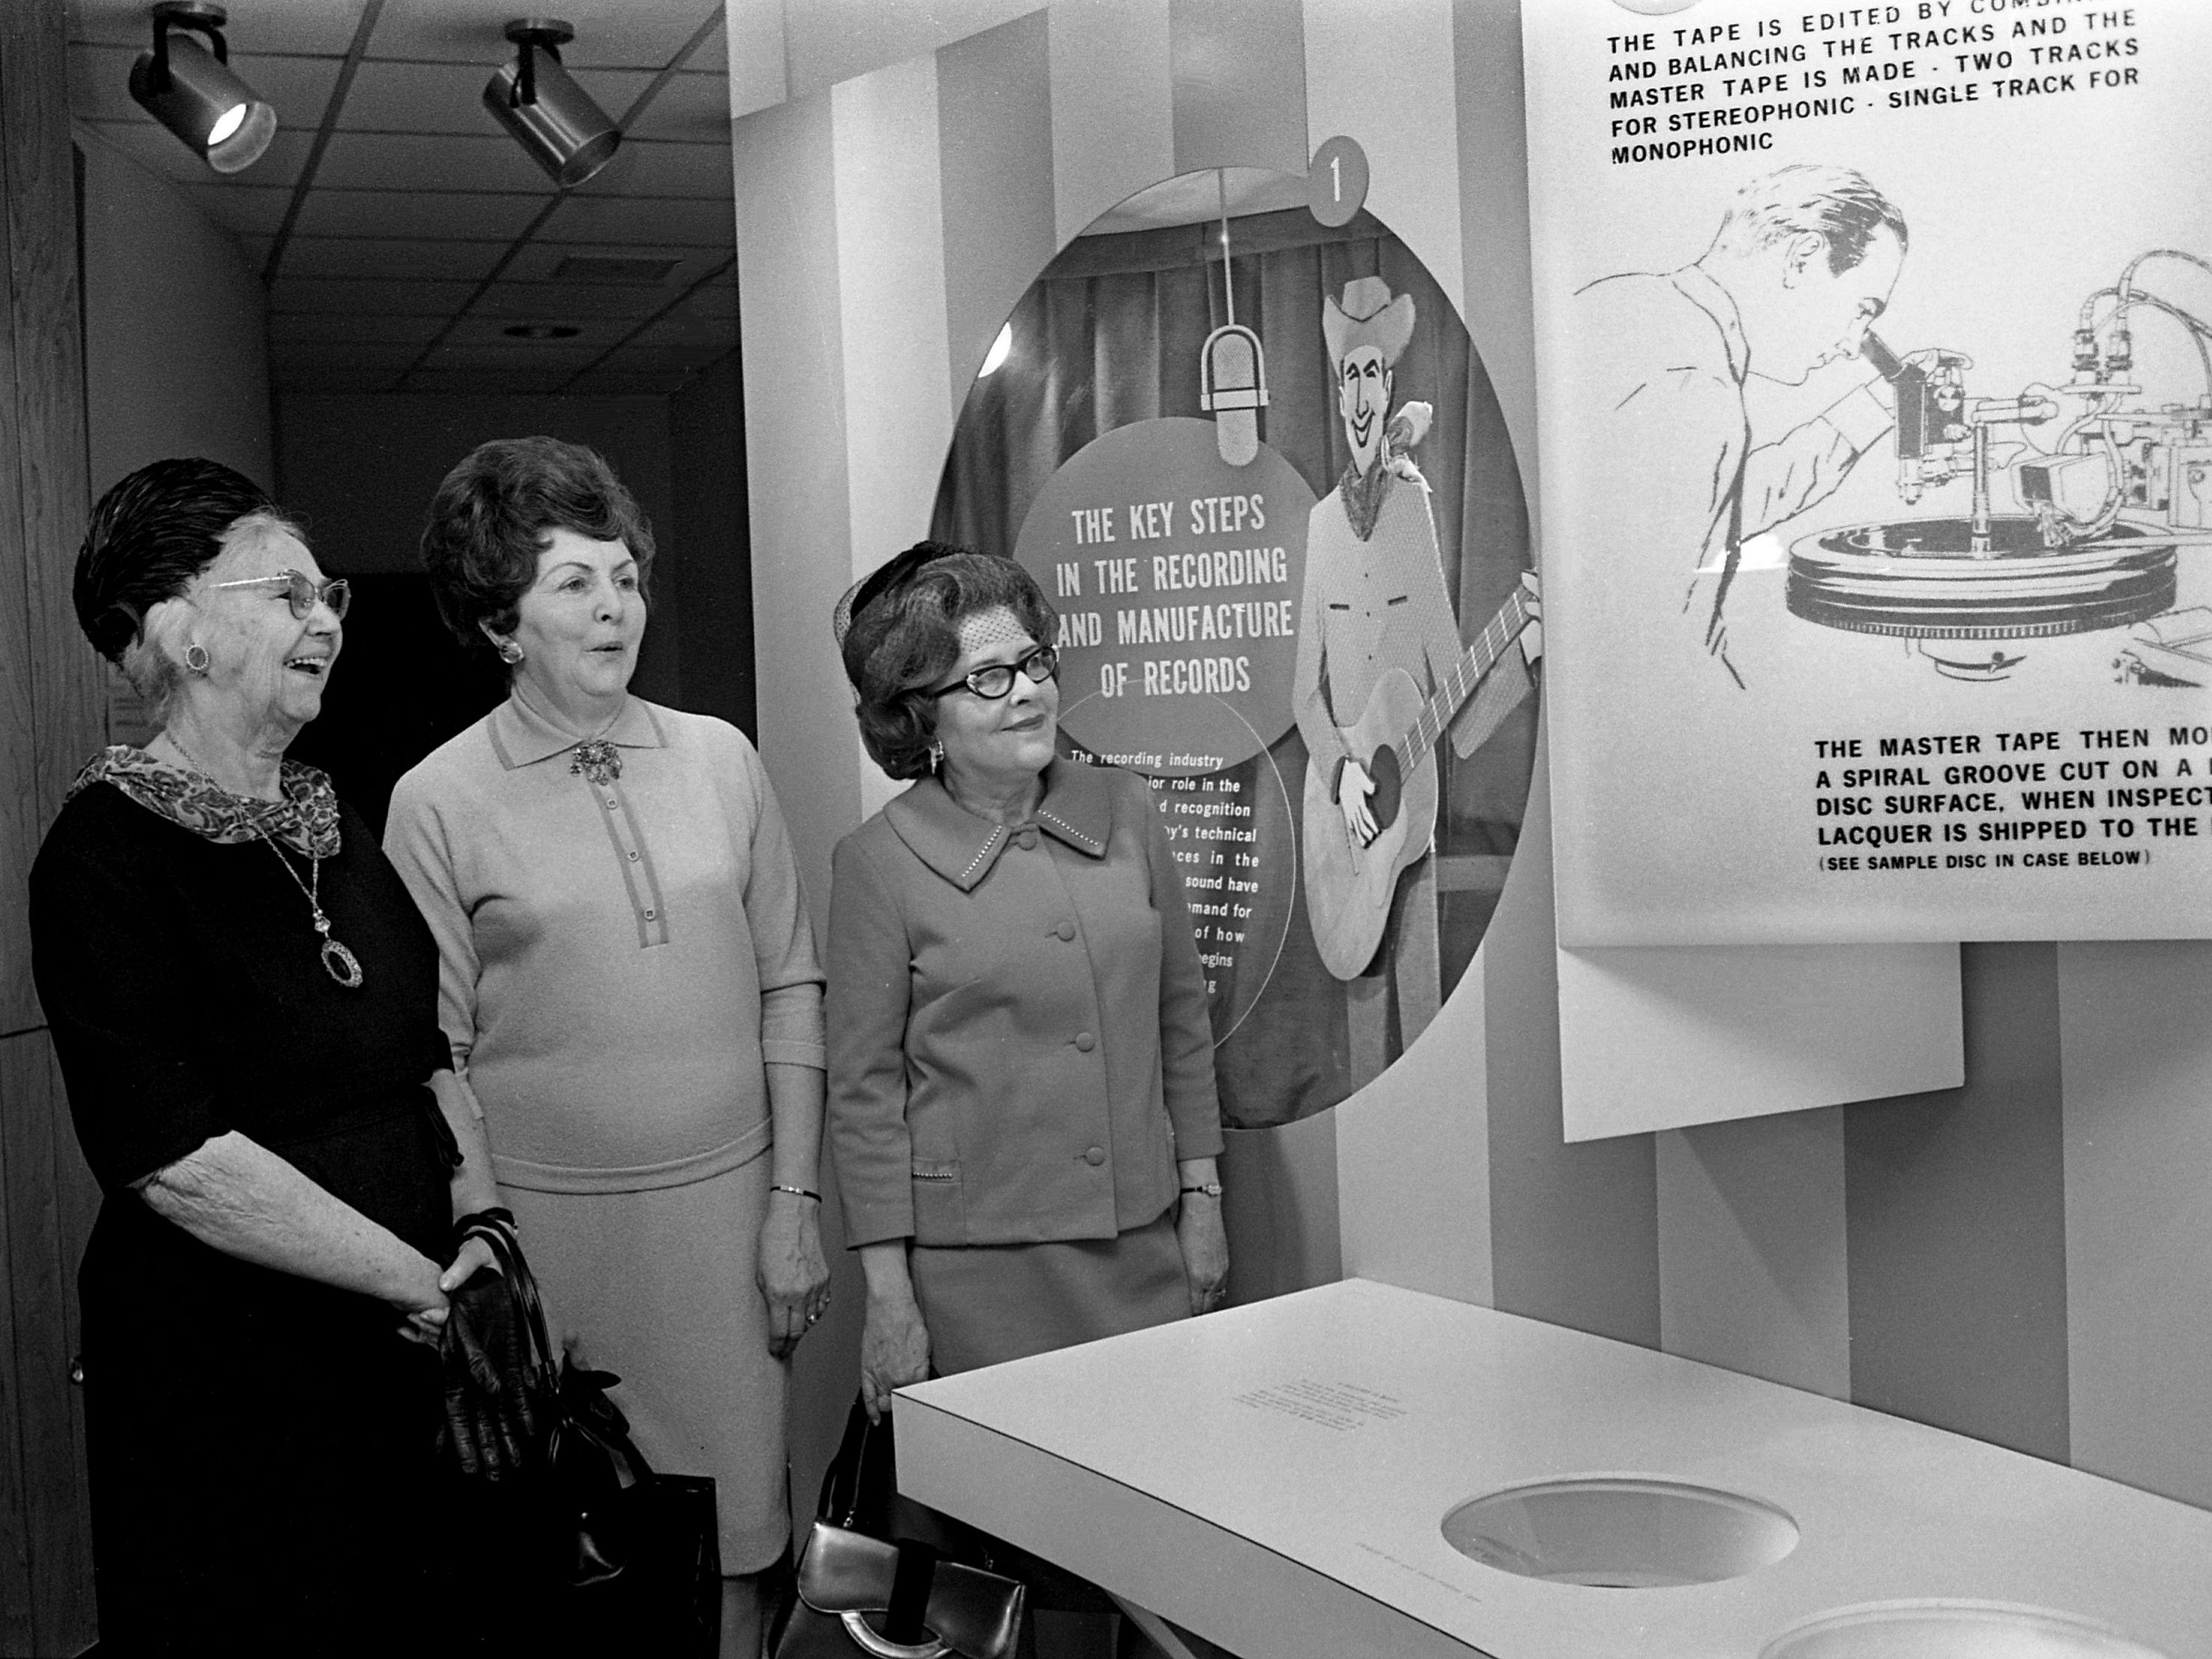 Mrs. W.R. Pardue, left, Mrs. Joe Lackey and Mrs. Clifford Allen, members of the Nashville Bar Auxiliary, check out one of the exhibits of the Country Music Hall of Fame after their luncheon at the site Jan. 30, 1969.